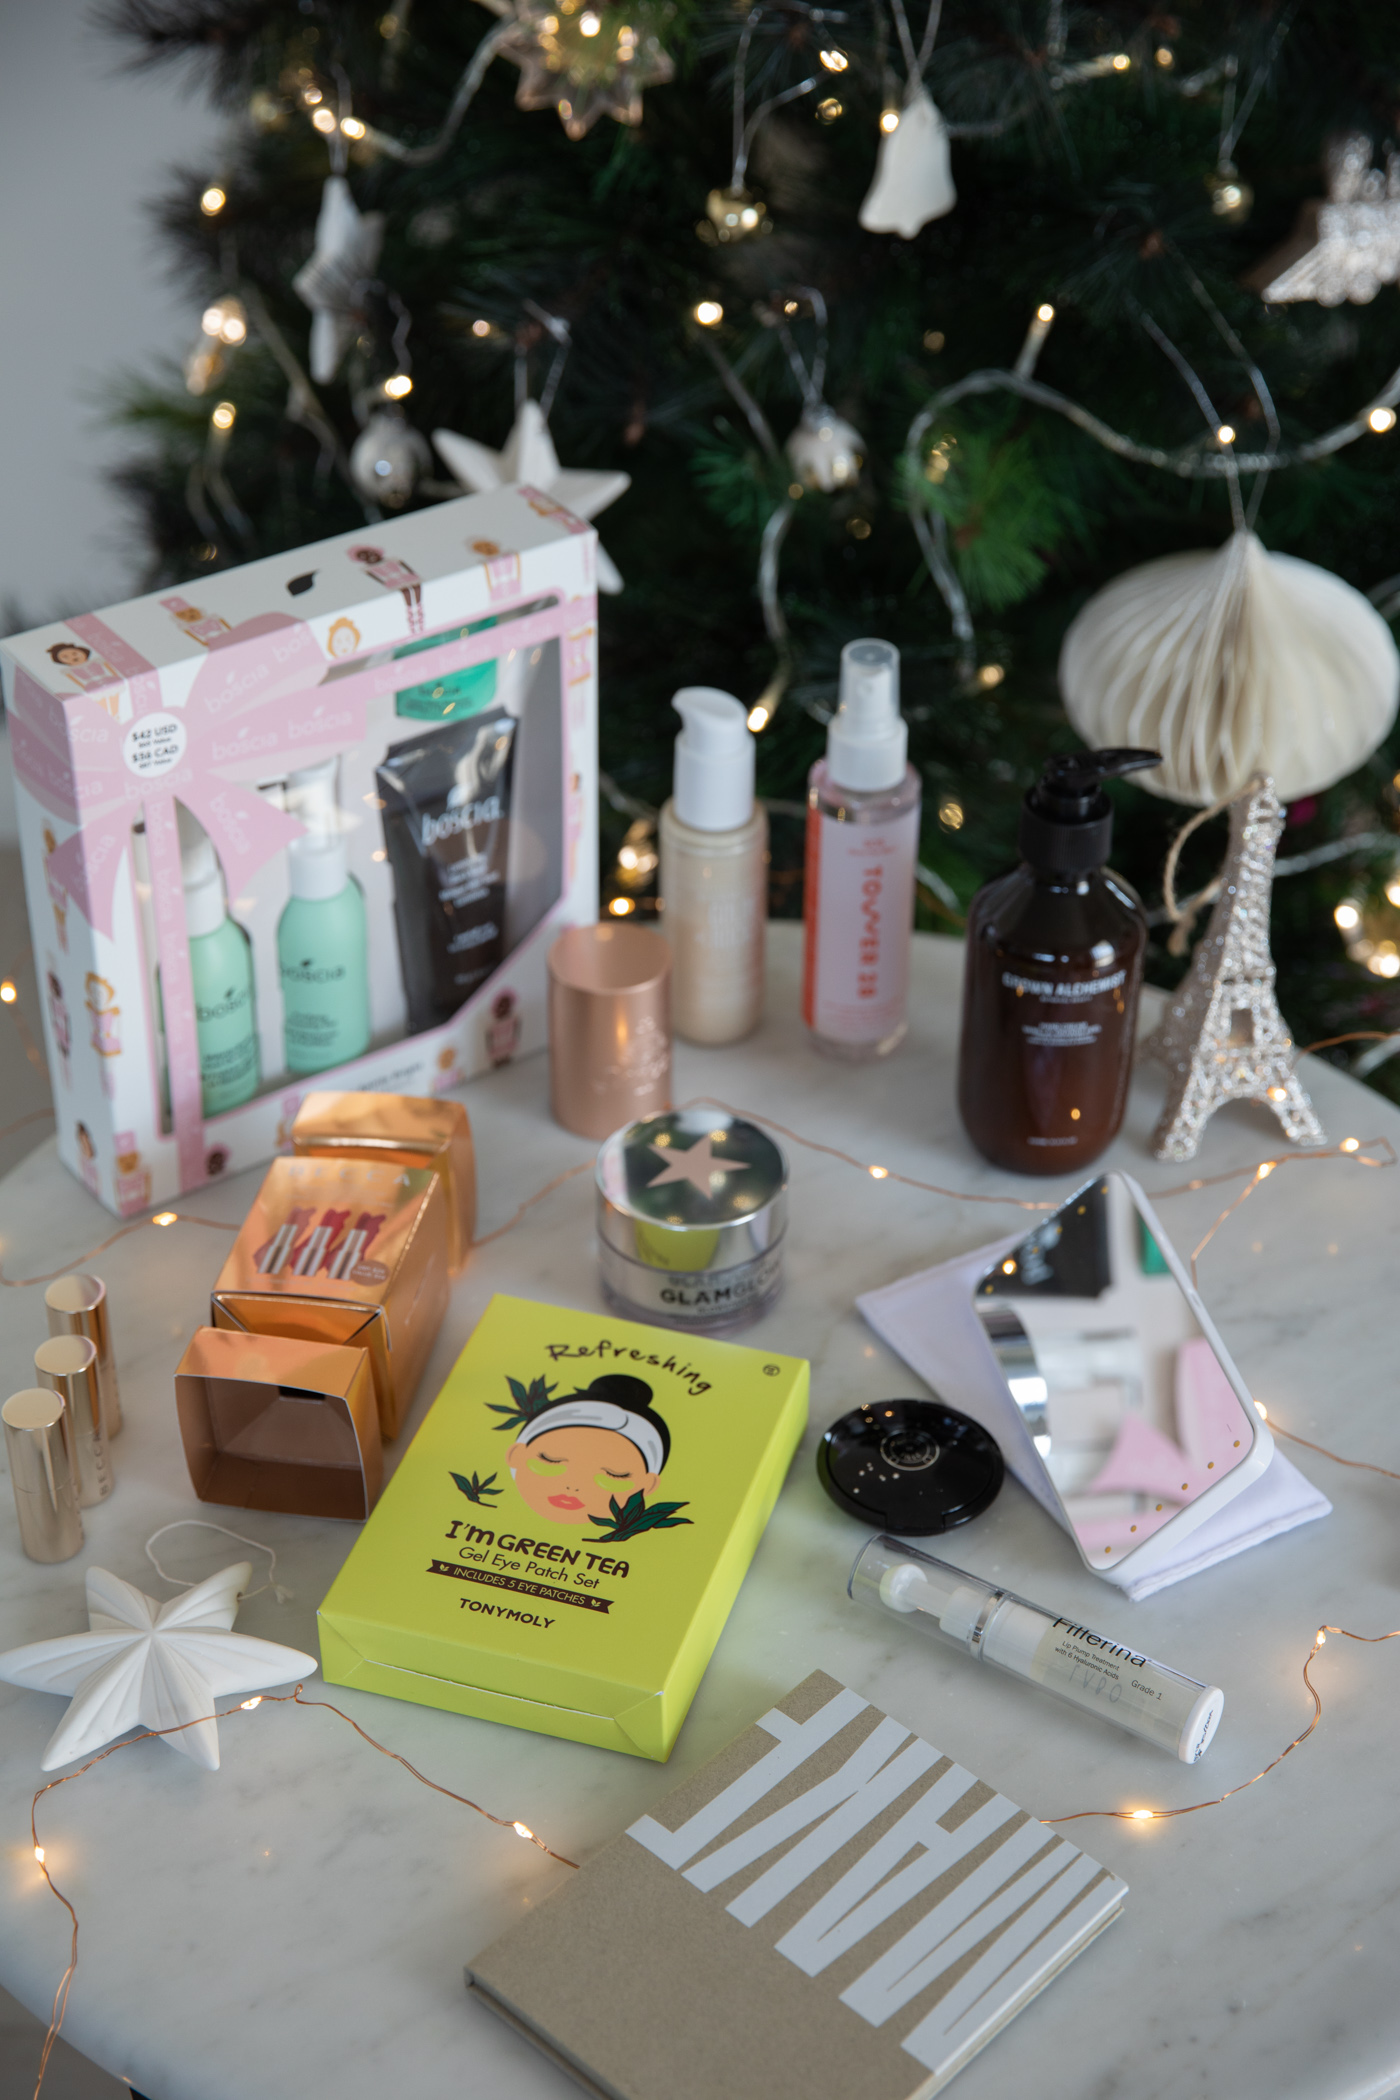 Christmas gift guide with Revolve beauty skincare and makeup bestsellers